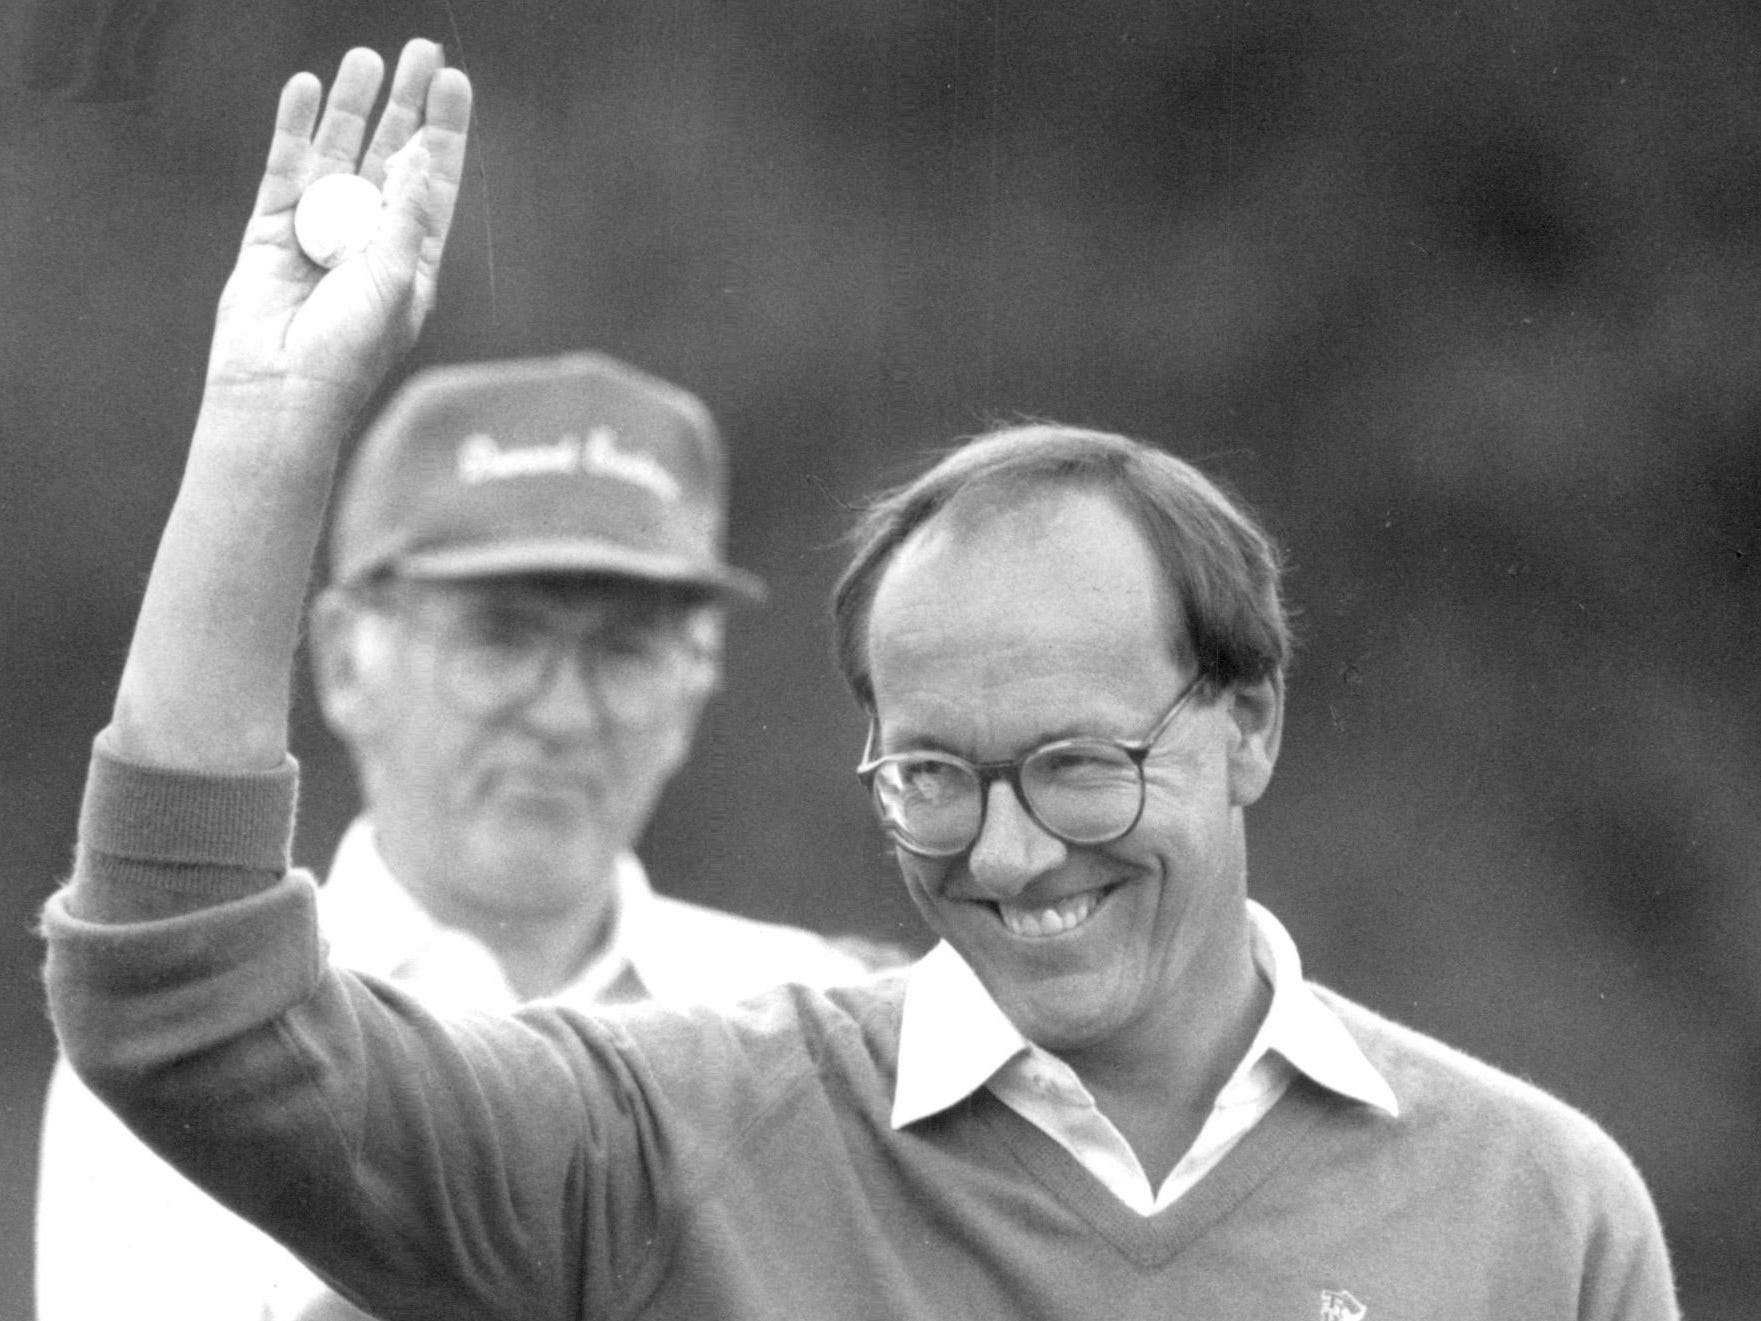 Jim Boeheim waves to the crowd at Oak Hill while playing in a Pro-Am on June 8, 1988.